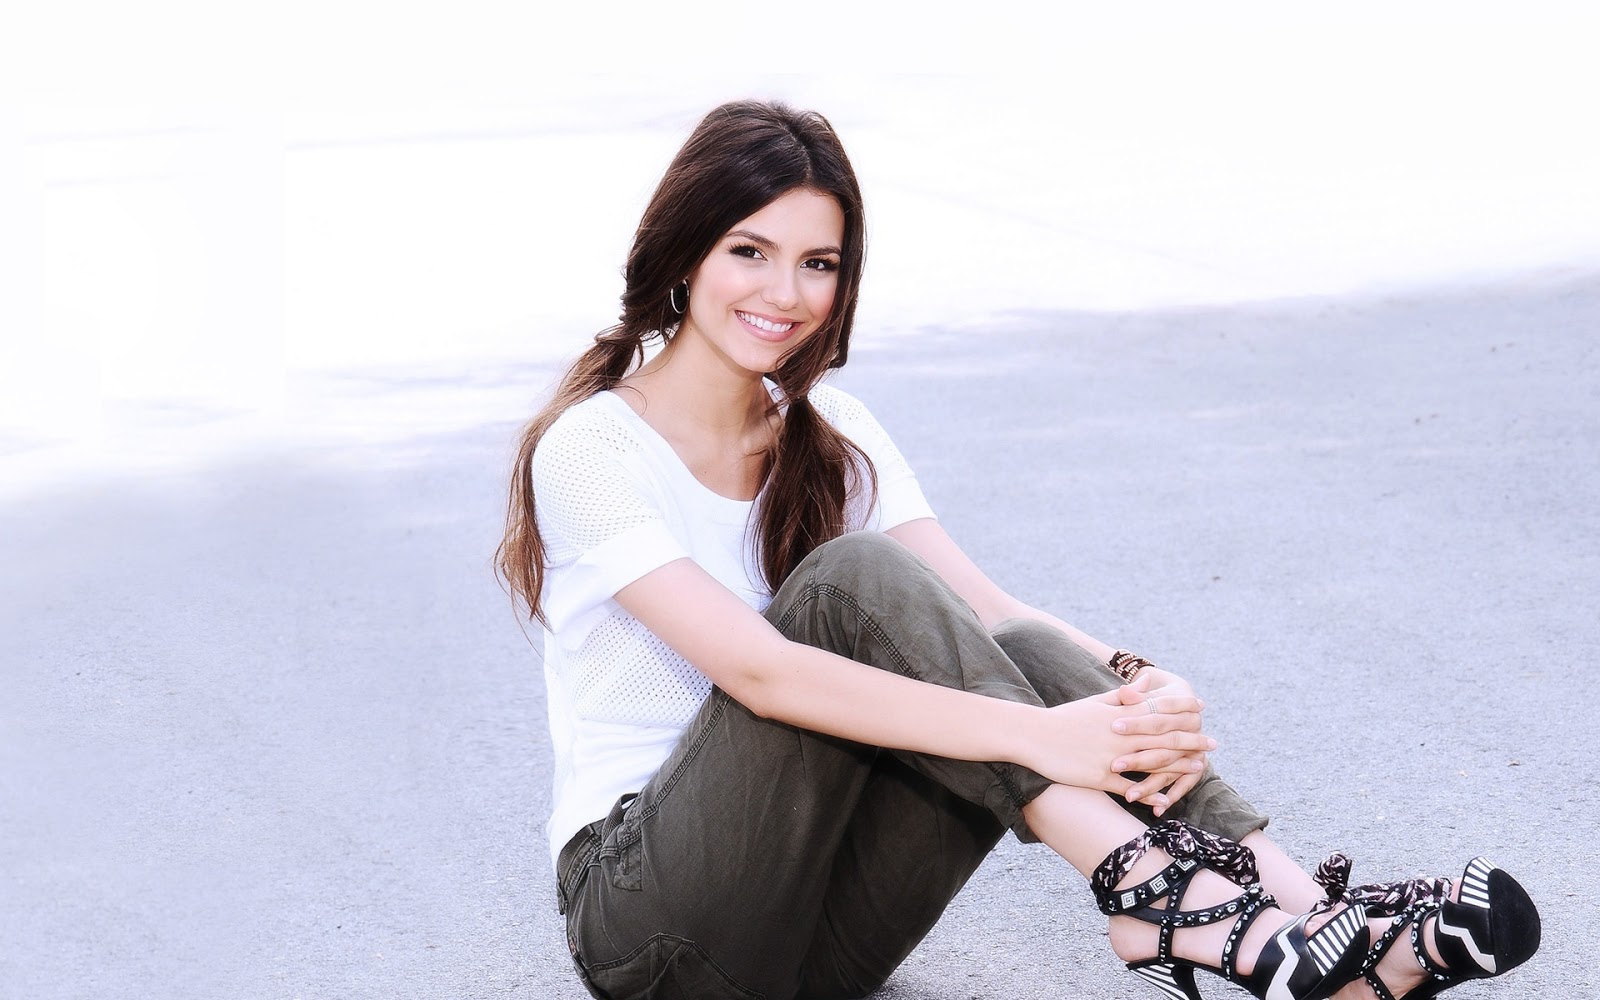 Hollywood Victoria Justice hd New Nice Wallpapers 2013 1600x1000